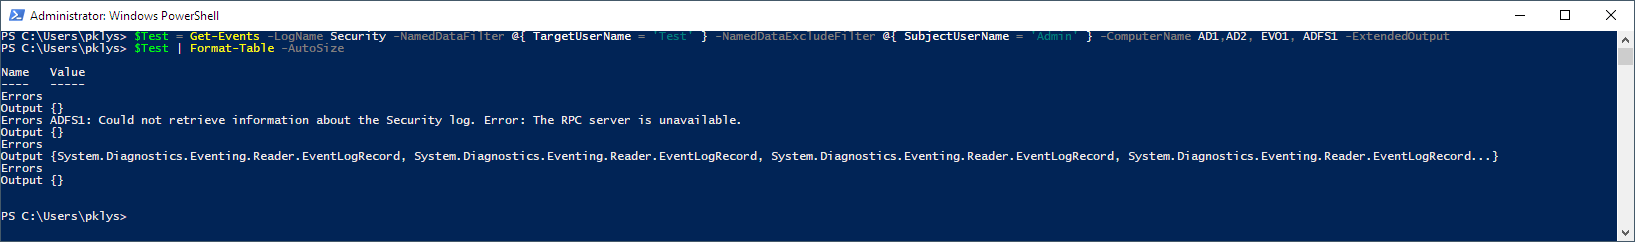 Get-Events Errors